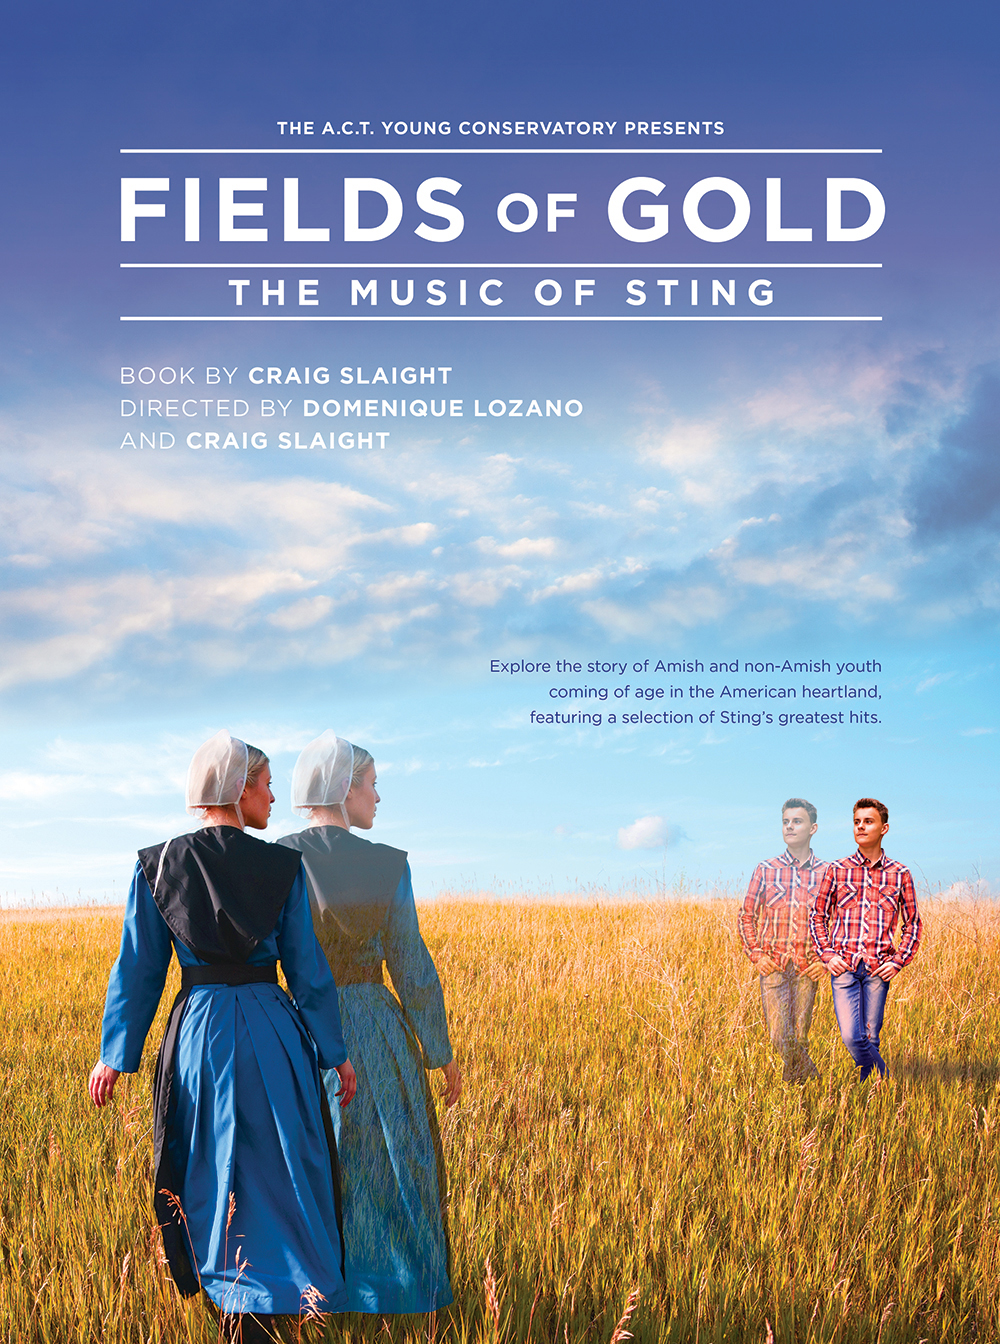 sting and the amish meet in i fields of gold the music of sting i